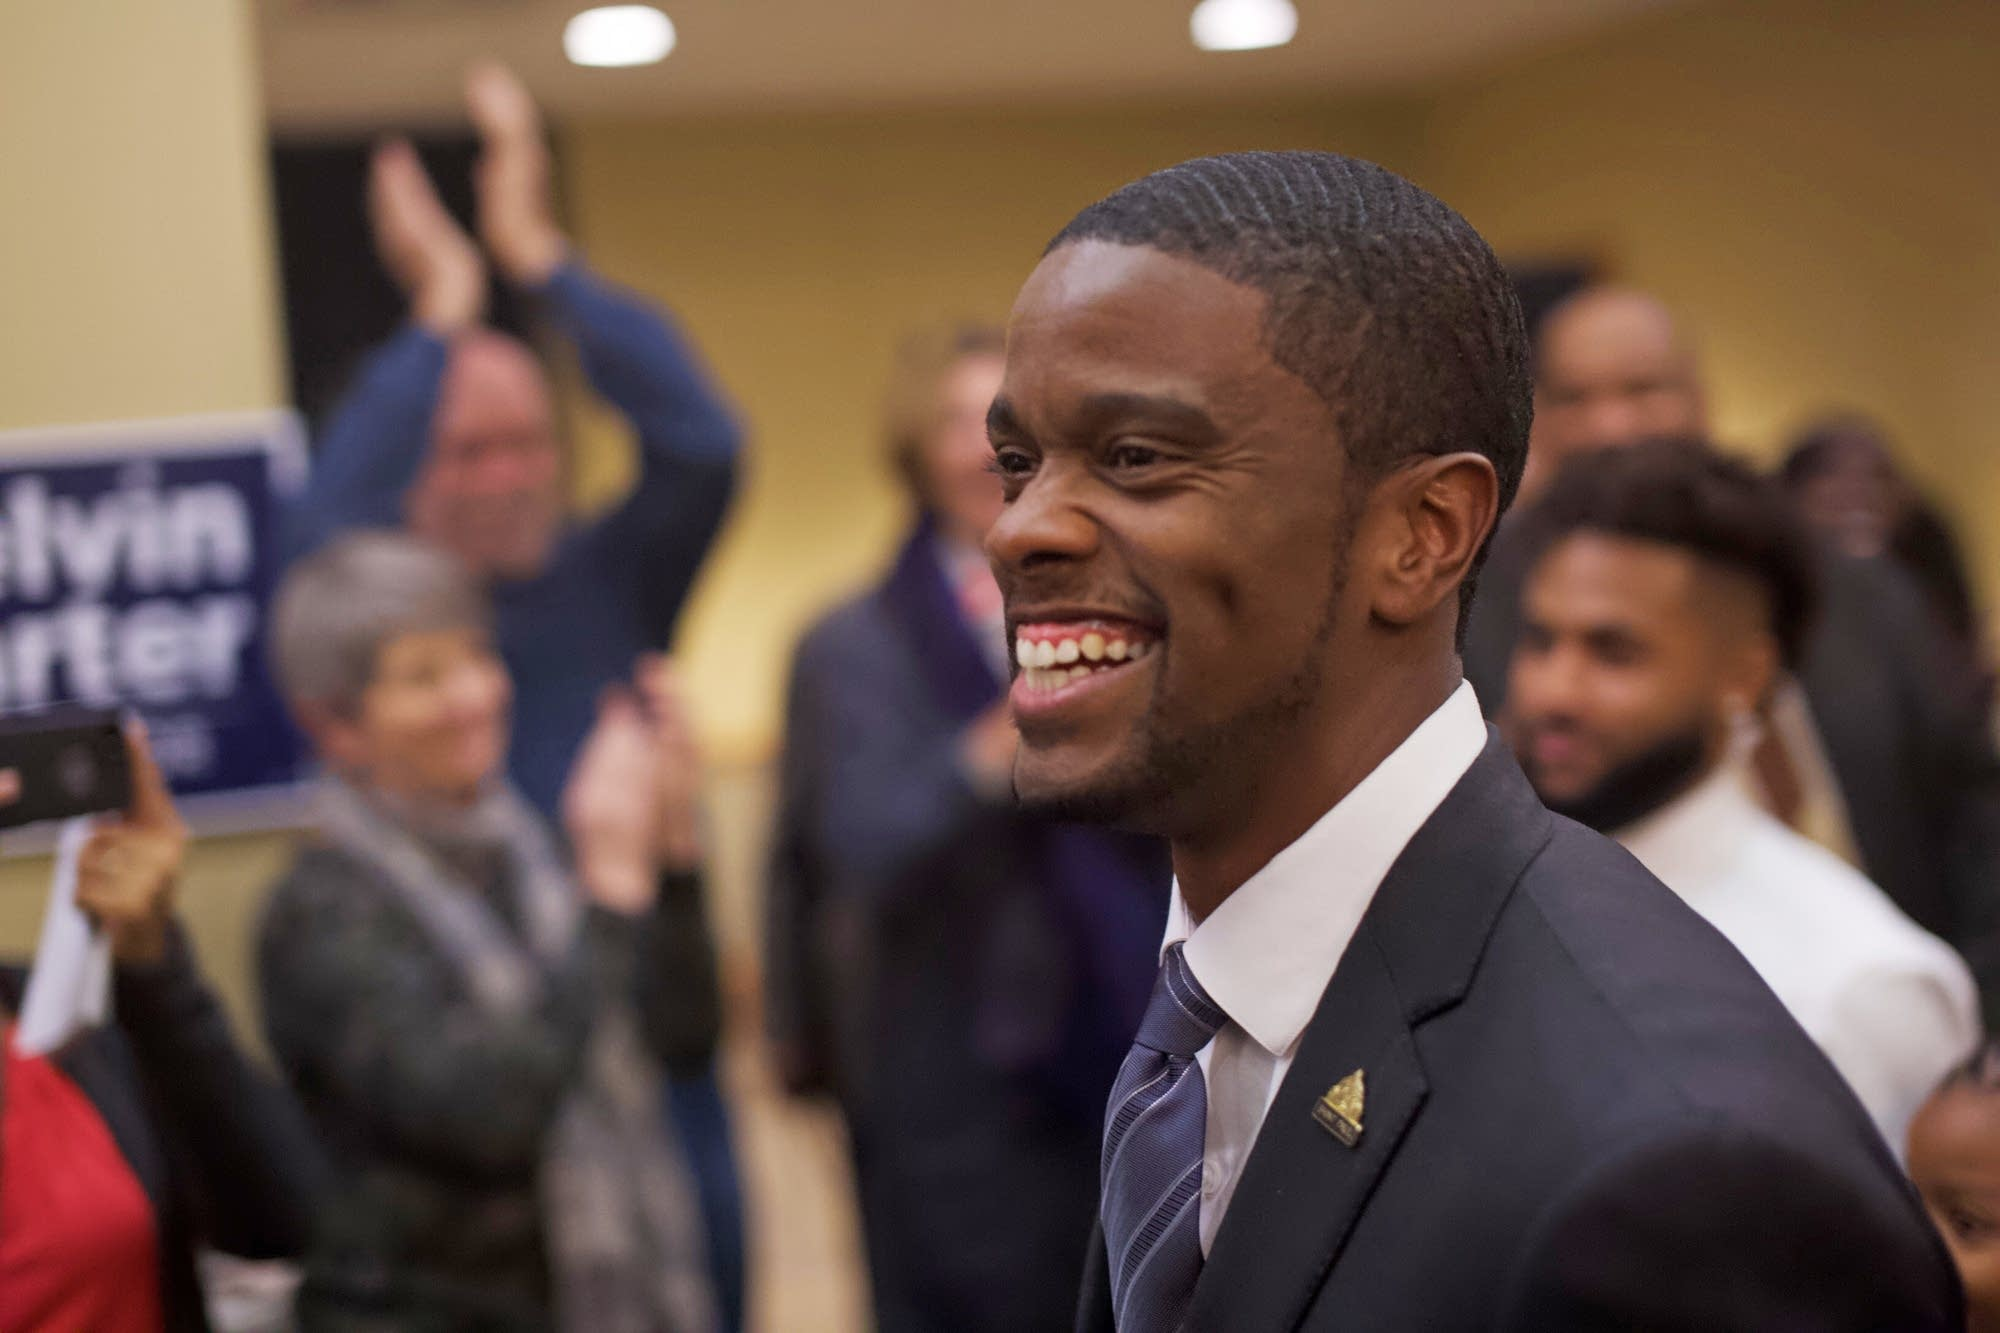 Melvin Carter elected first black mayor of St. Paul